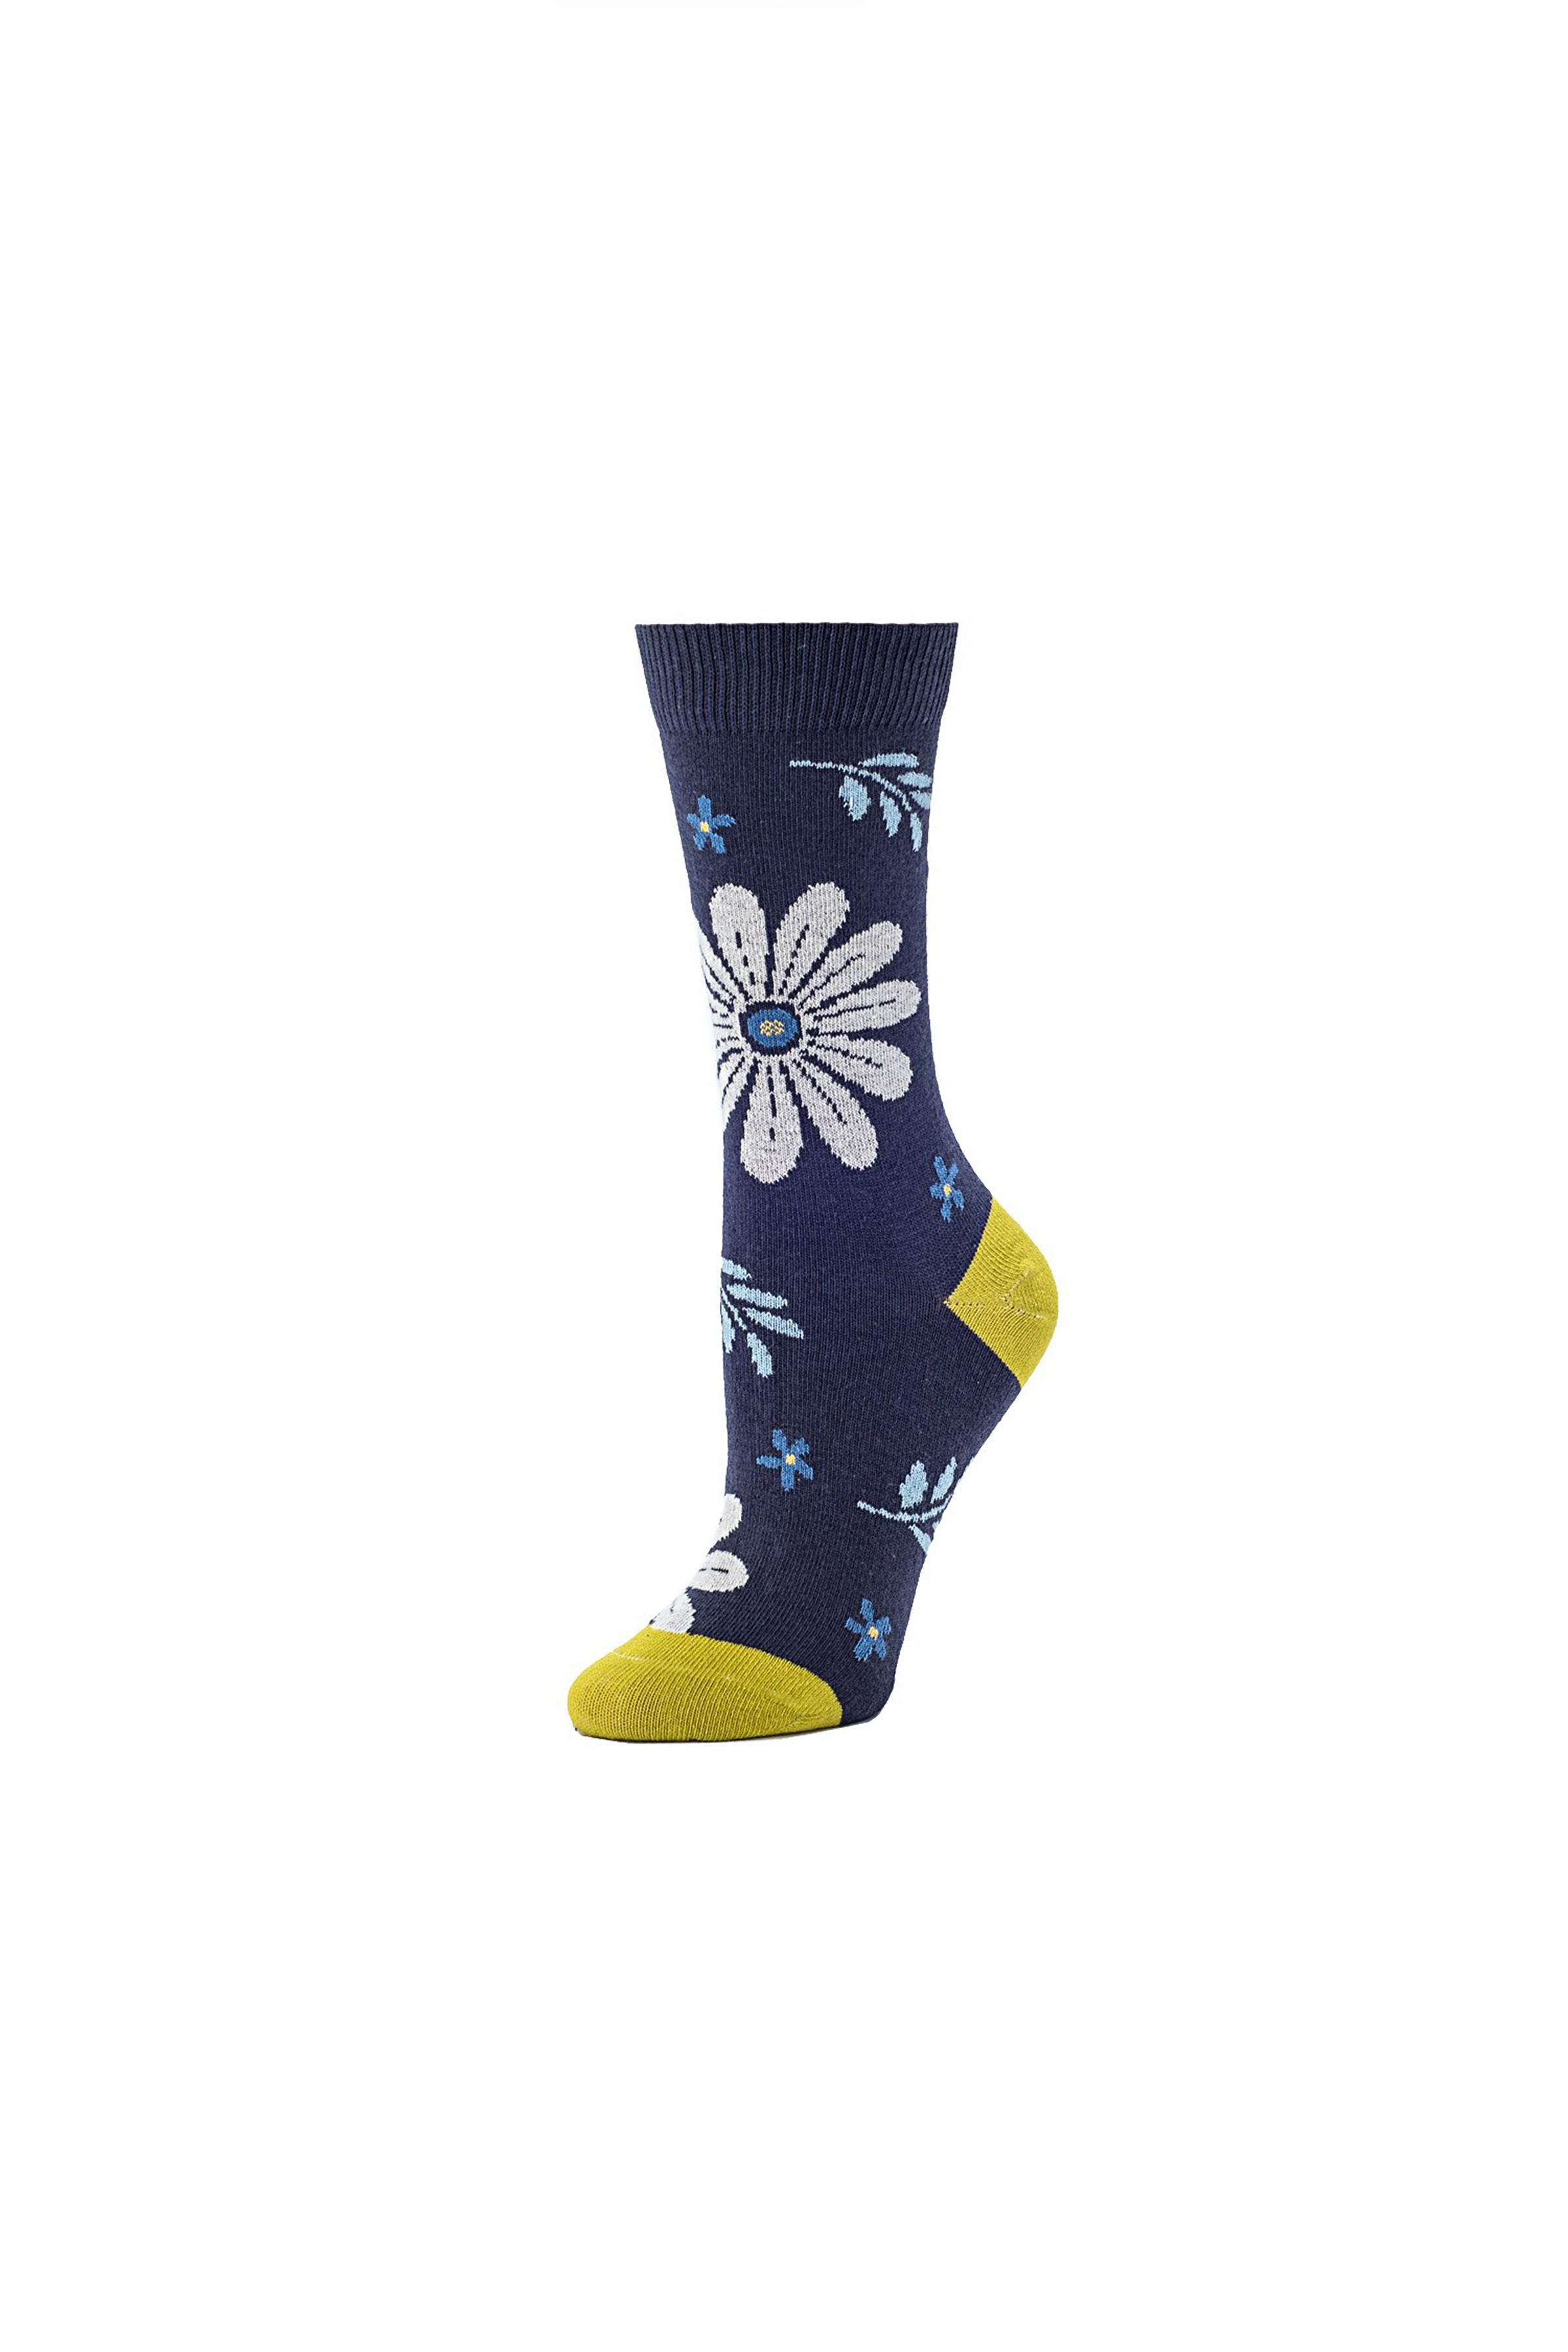 Bohemian Floral Crew- Navy